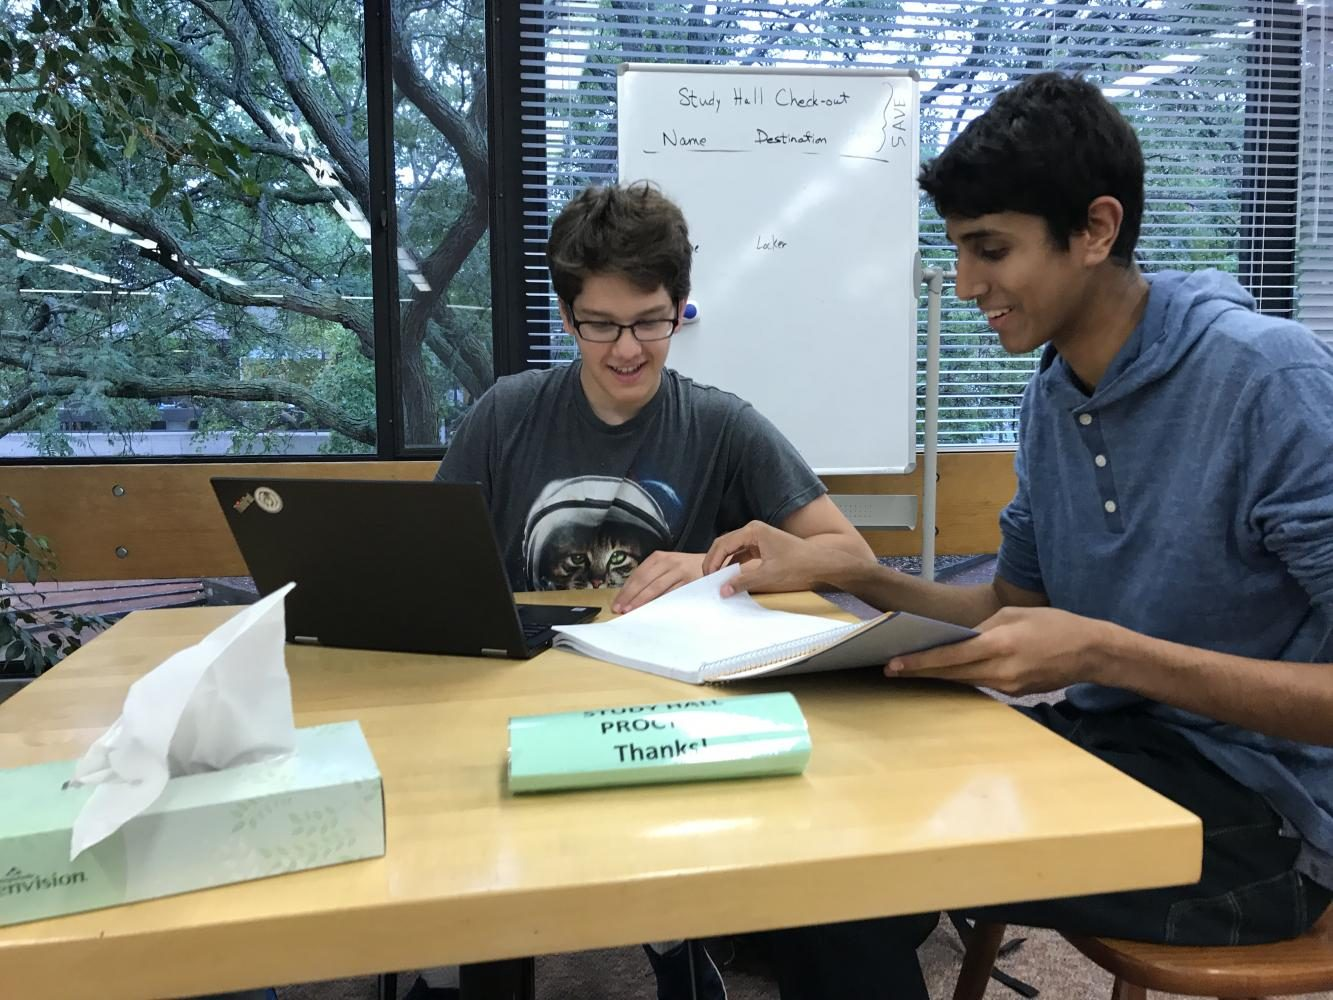 Senior+Rahul+Dev+founded+Agoge+Tutoring+to+engage+his+classmates+through+homework+assistance.+%0A%22I%E2%80%99ve+always+loved+helping+peers+with+homework%2C+and+I+think+it%E2%80%99s+really+useful+to+have+a+student+as+a+resource%2C%22+said+Dev.